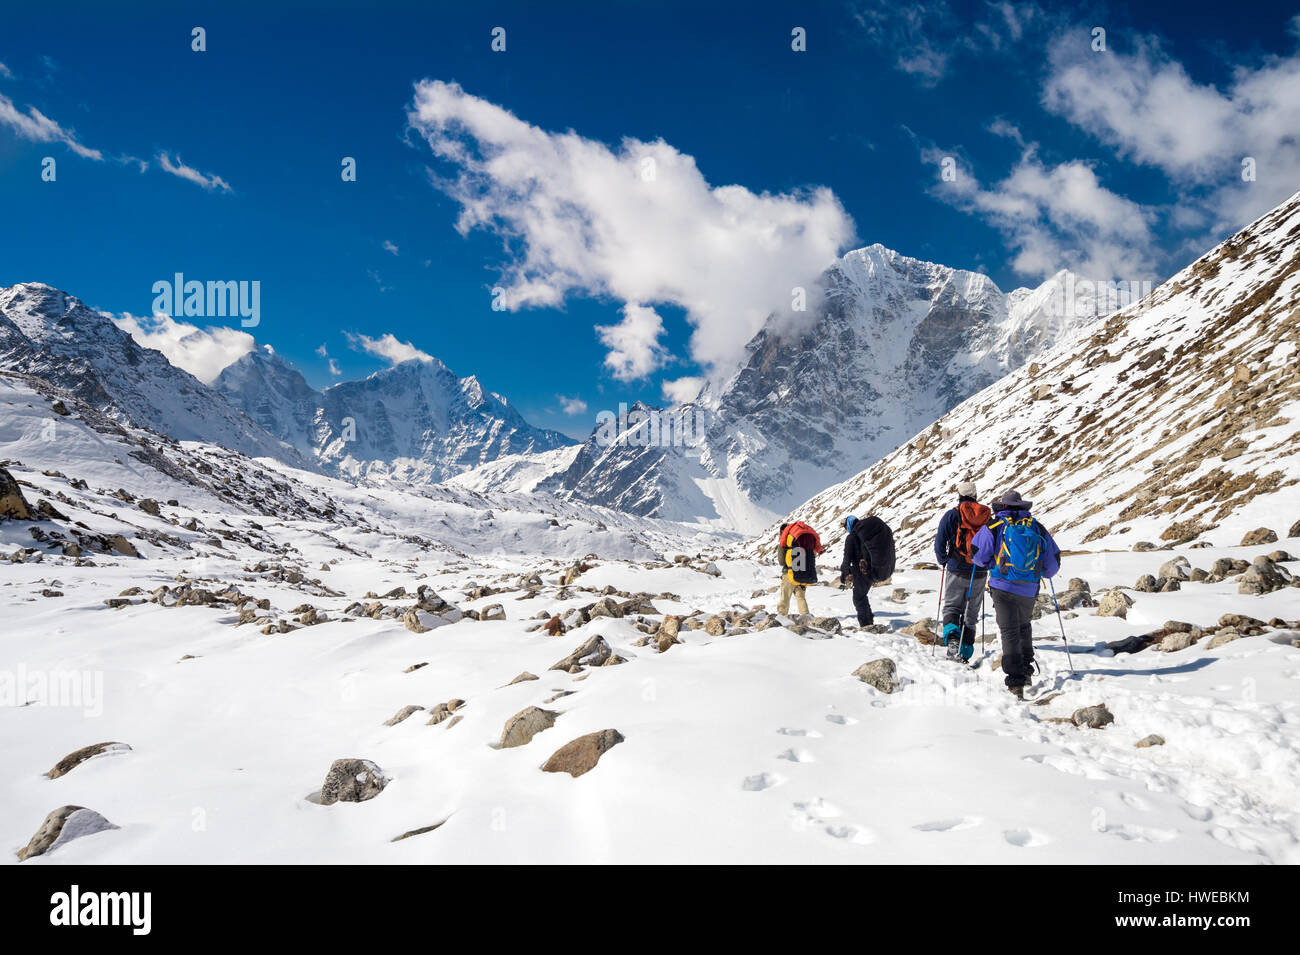 Sagarmatha National Park, Nepal, March 14th 2015. A group of trekkers and sherpas is going back from Everest Base - Stock Image